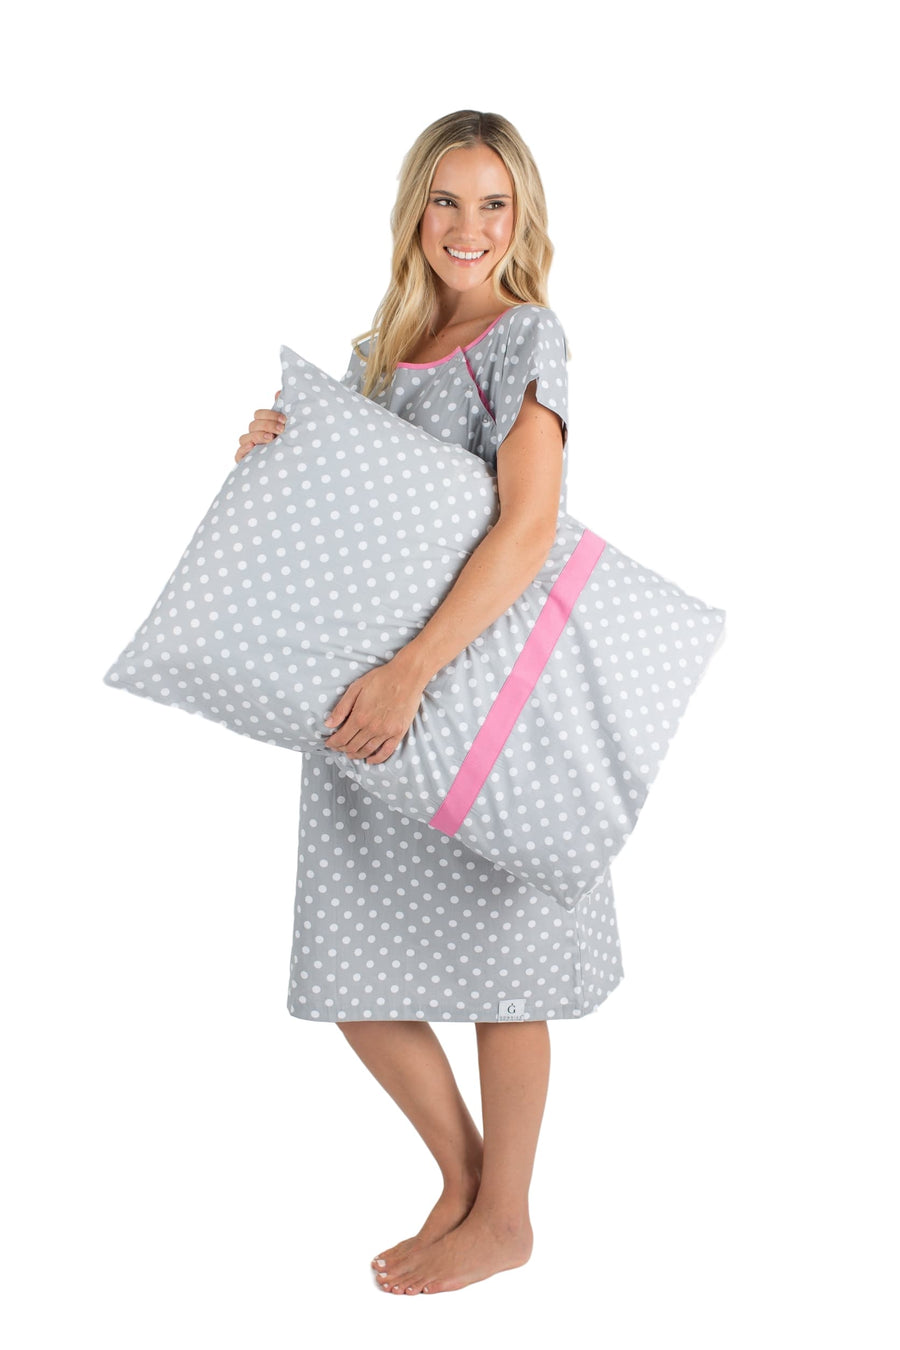 Designer Hospital Gowns for Maternity & Matching Pillowcases – Baby ...